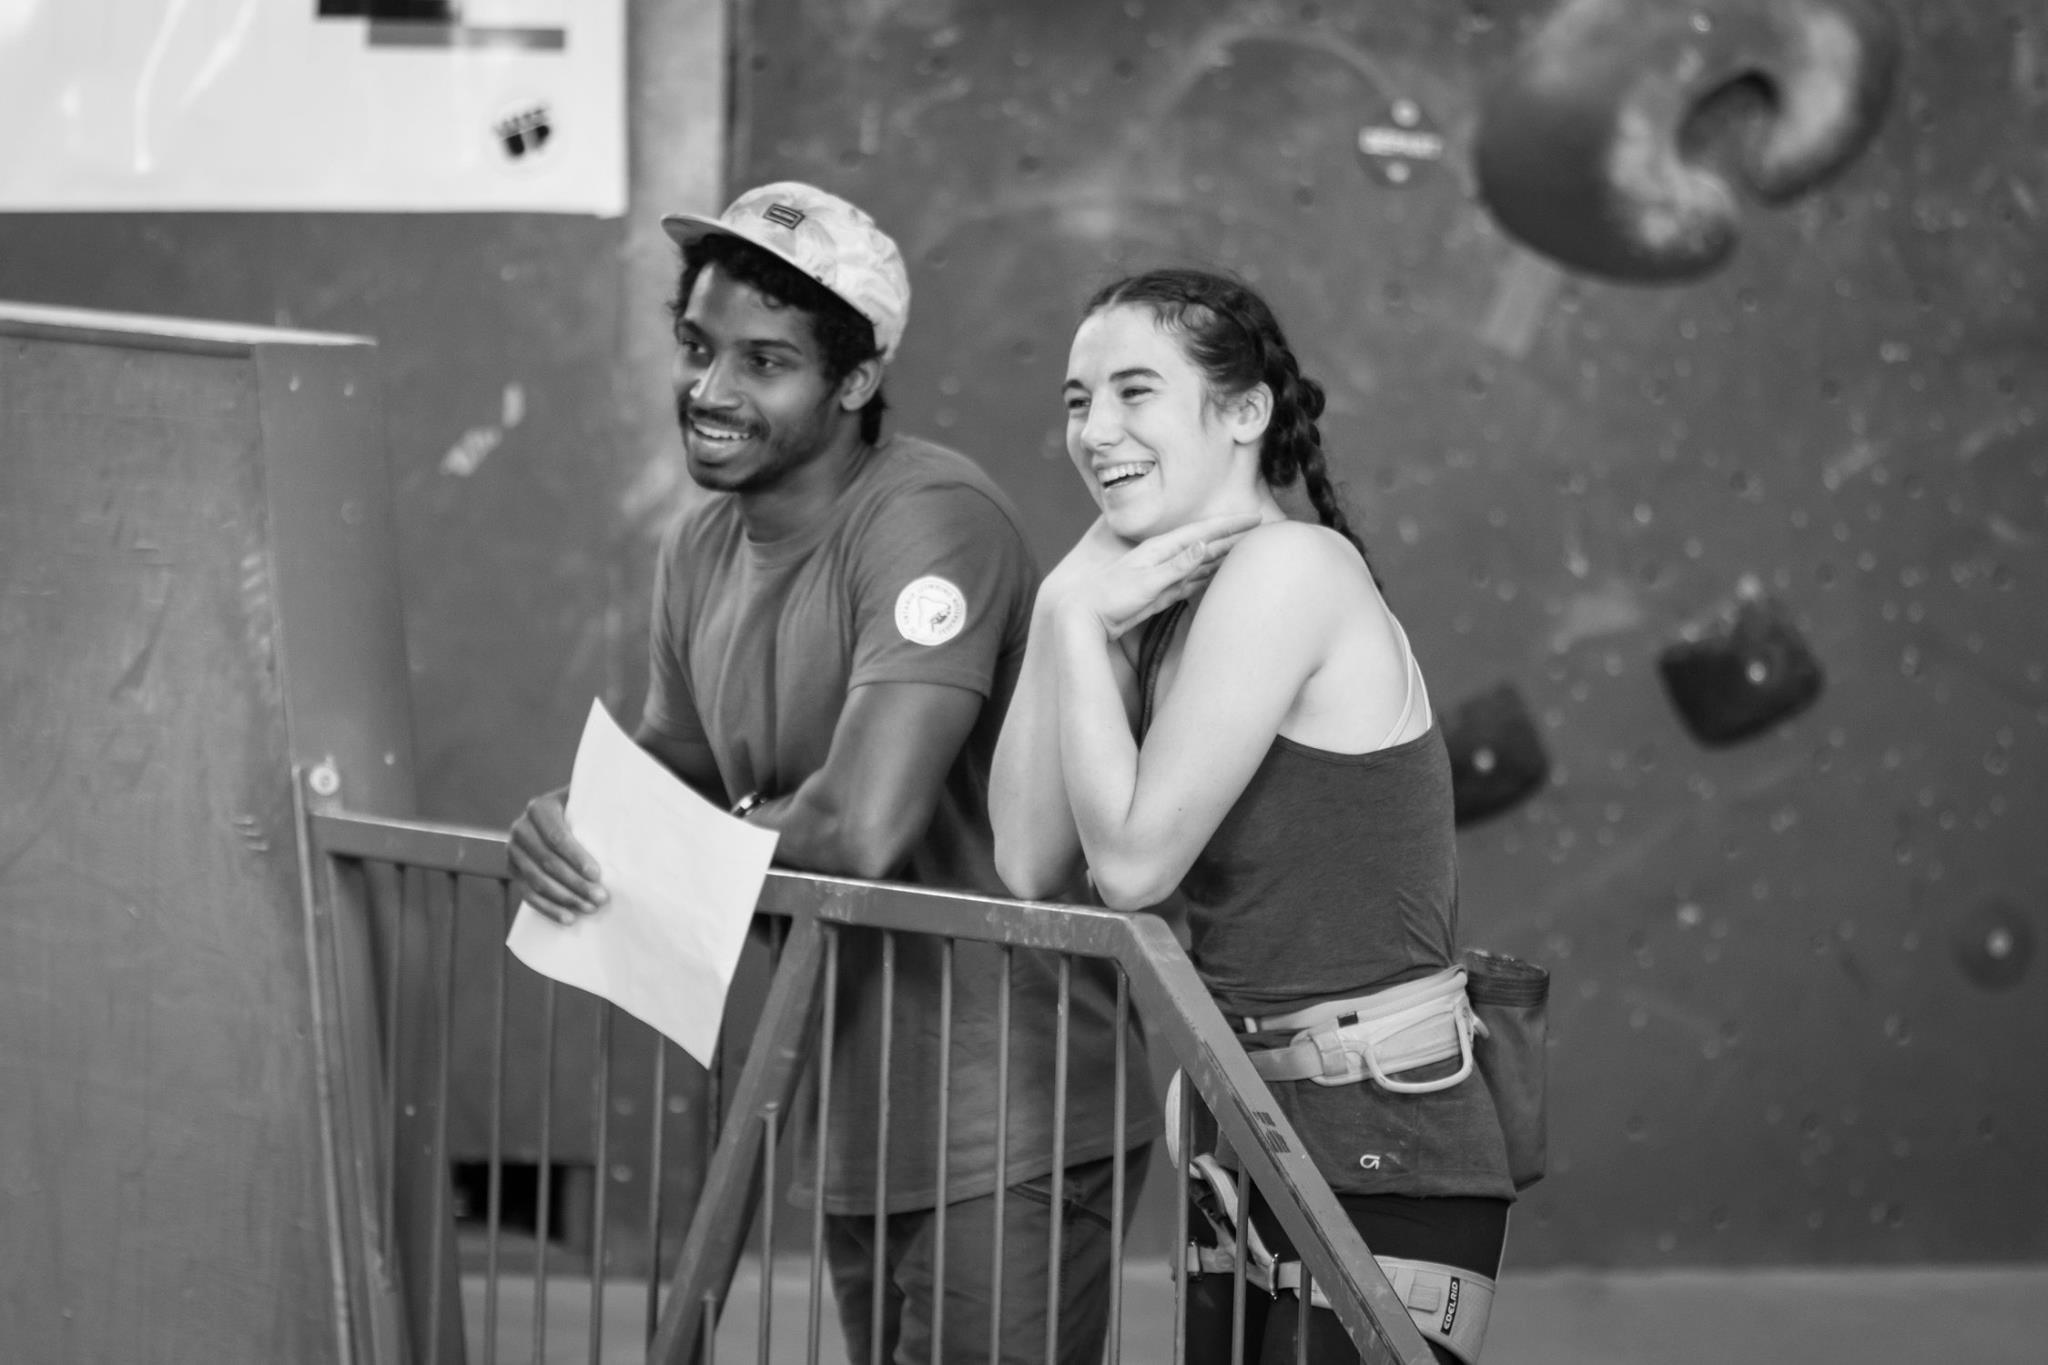 Shaun with athlete Dana Monteith at the Canadian youth training camp at Allez Up, in Montreal. Photo: Matt Chapman